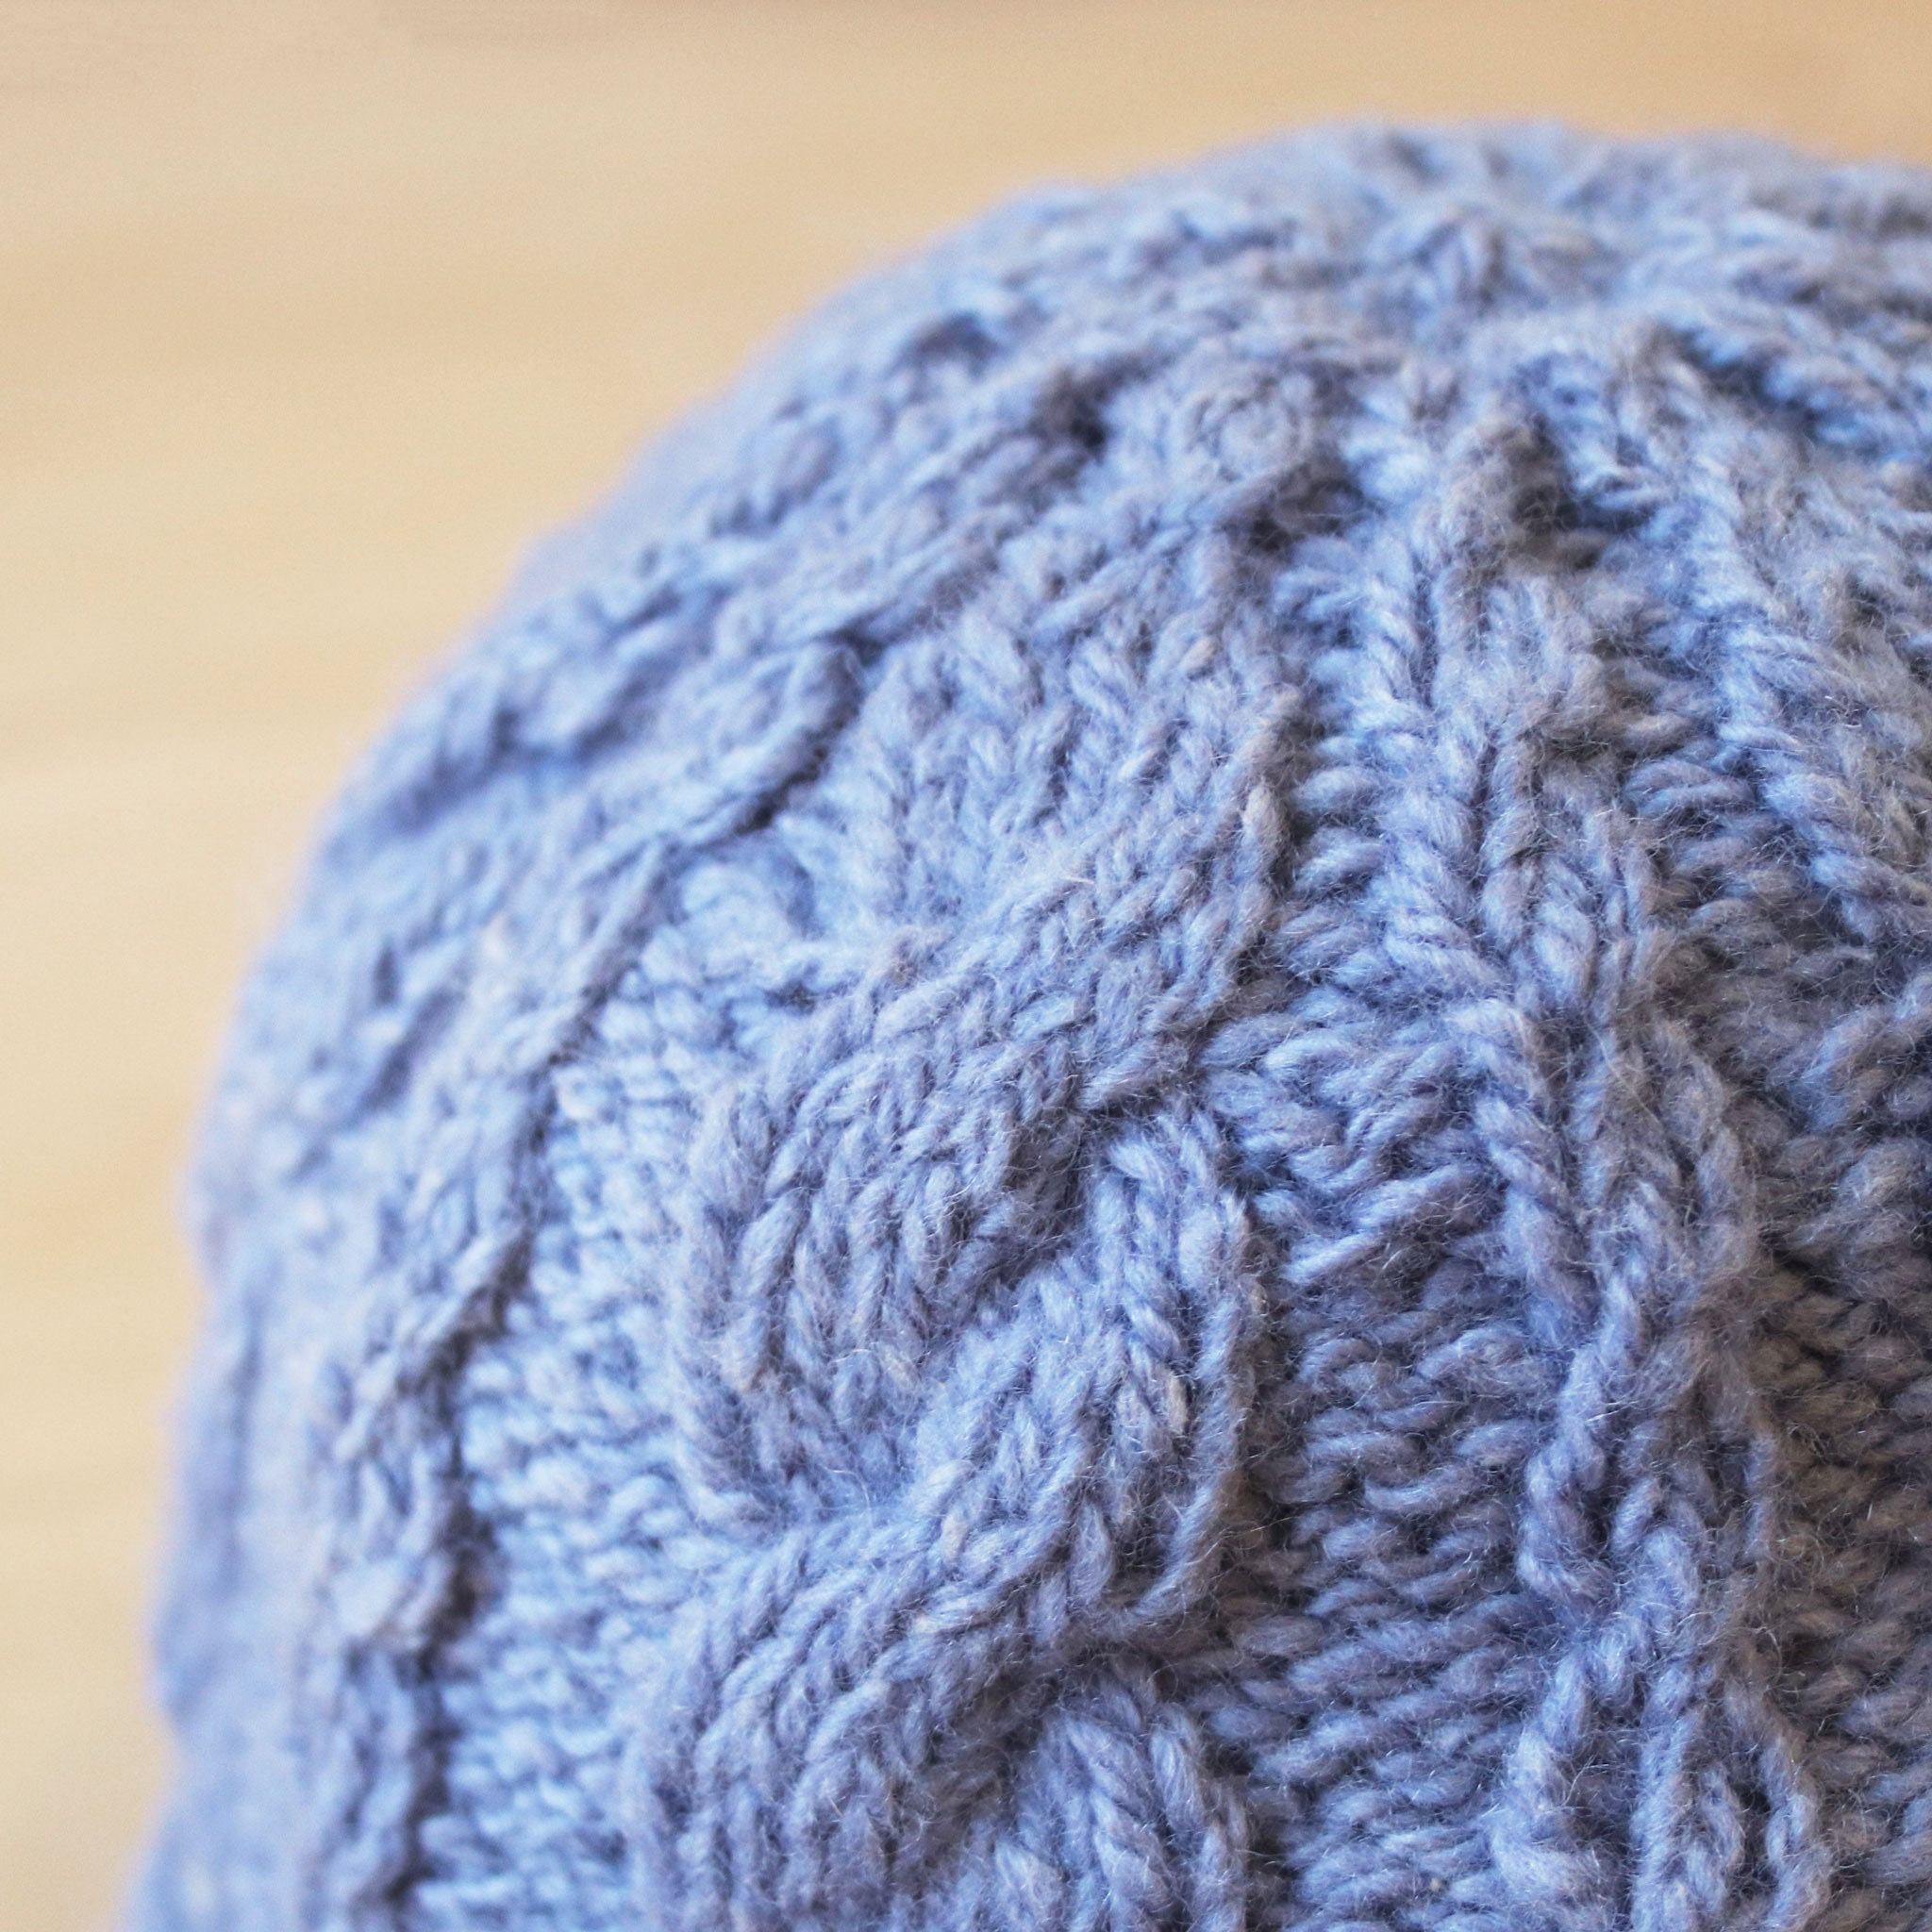 Cabled Hat No. 1